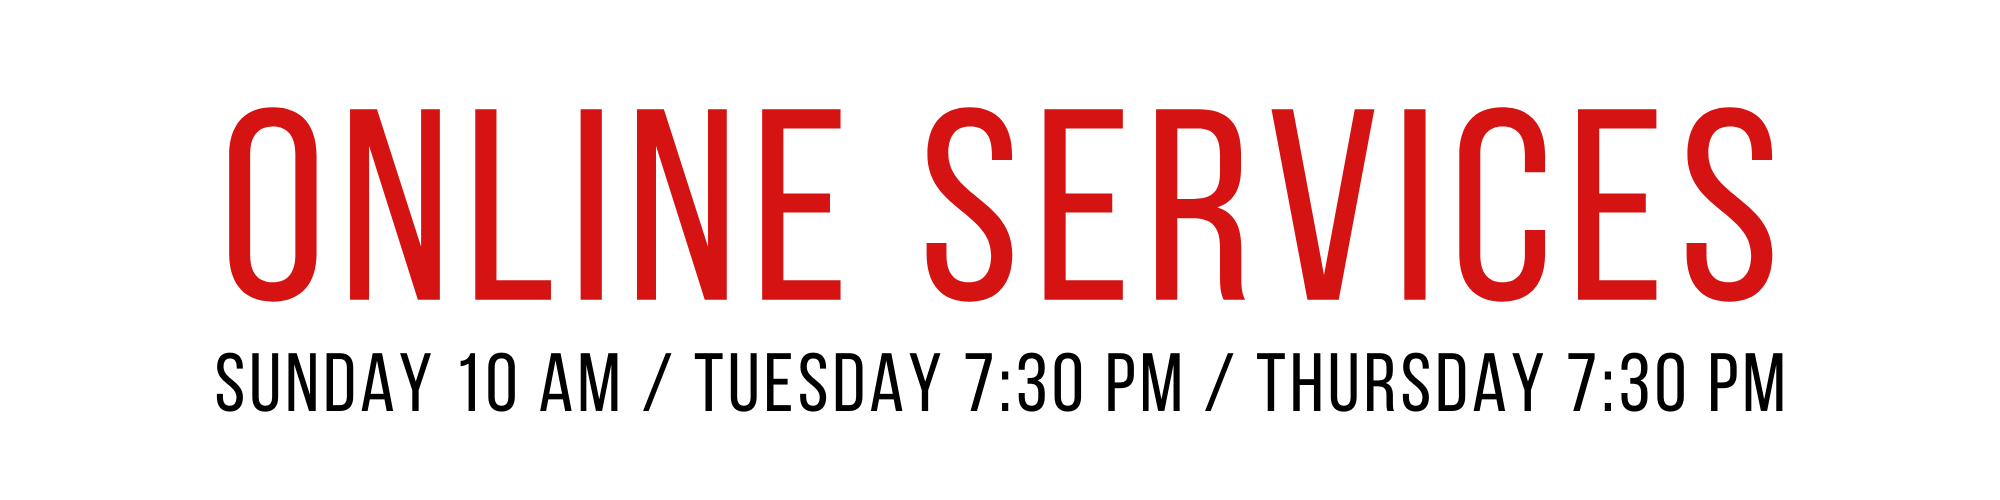 Online Services: Sunday 10 am Tuesday 7:30 pm Thursday 7:30 pm